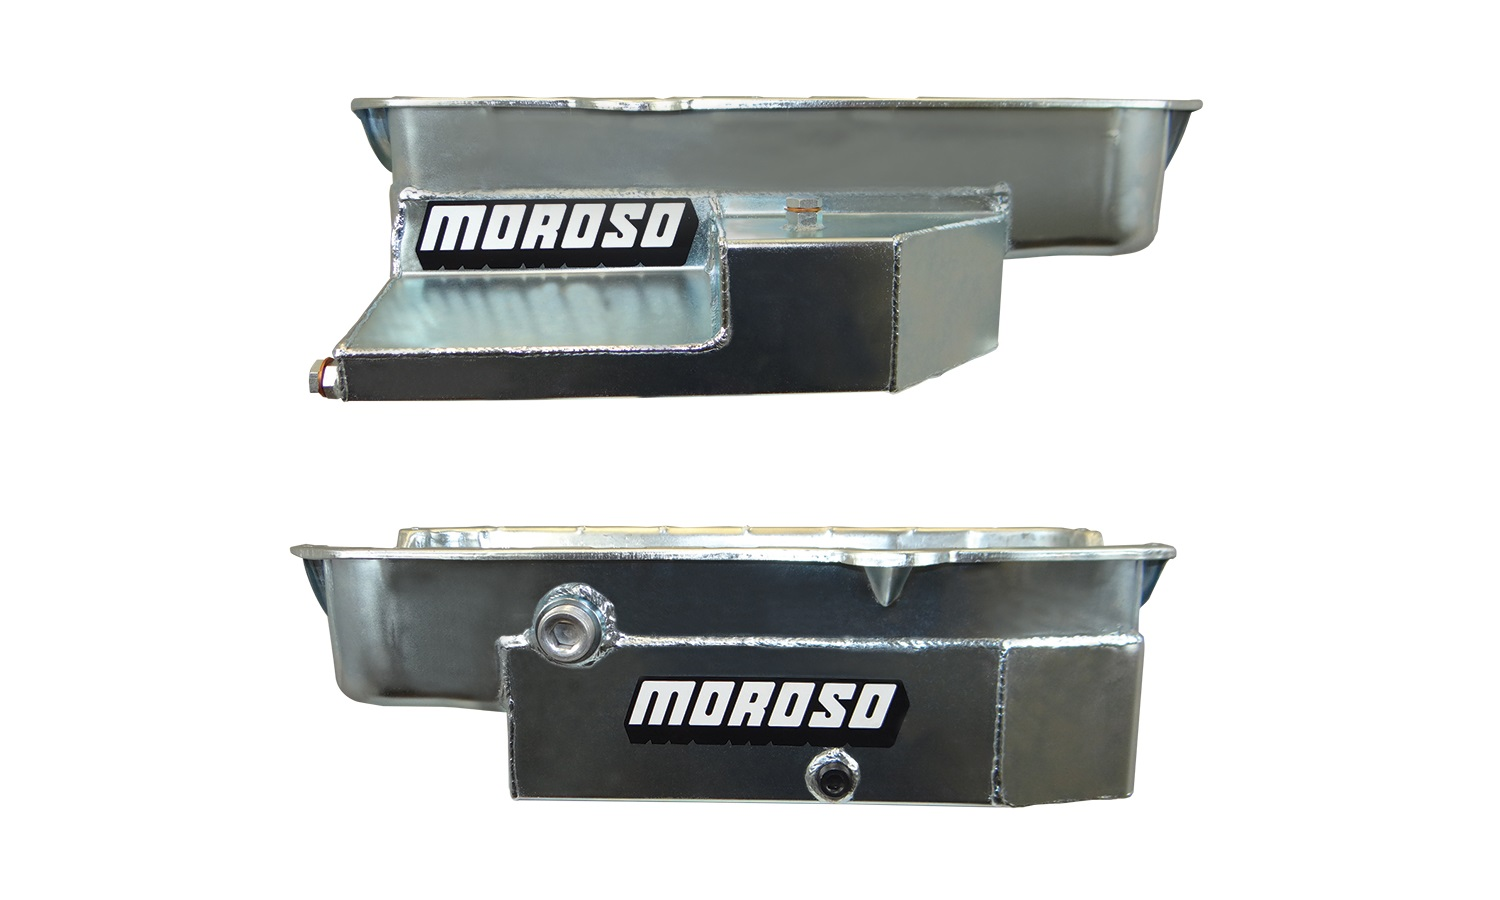 hight resolution of new from moroso the steel circle track racing oil pan for sbc this oil pan is designed for limited sprints and other low ground clearance chassis without